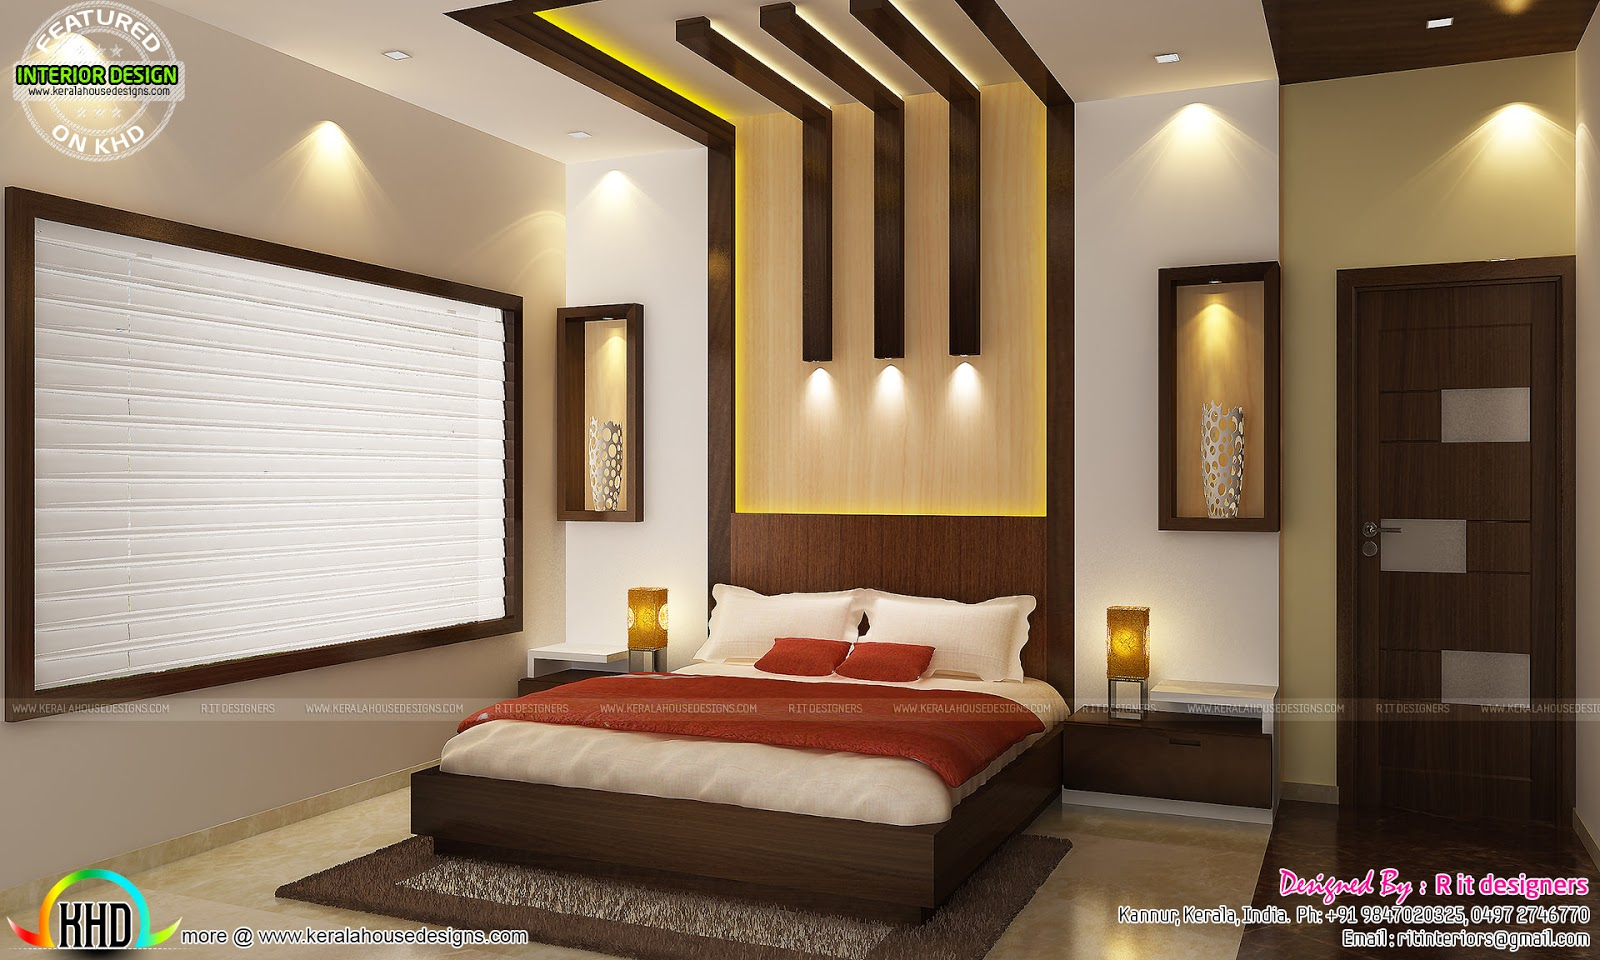 Kitchen living bedroom dining interior decor kerala for Interior designs for bedroom